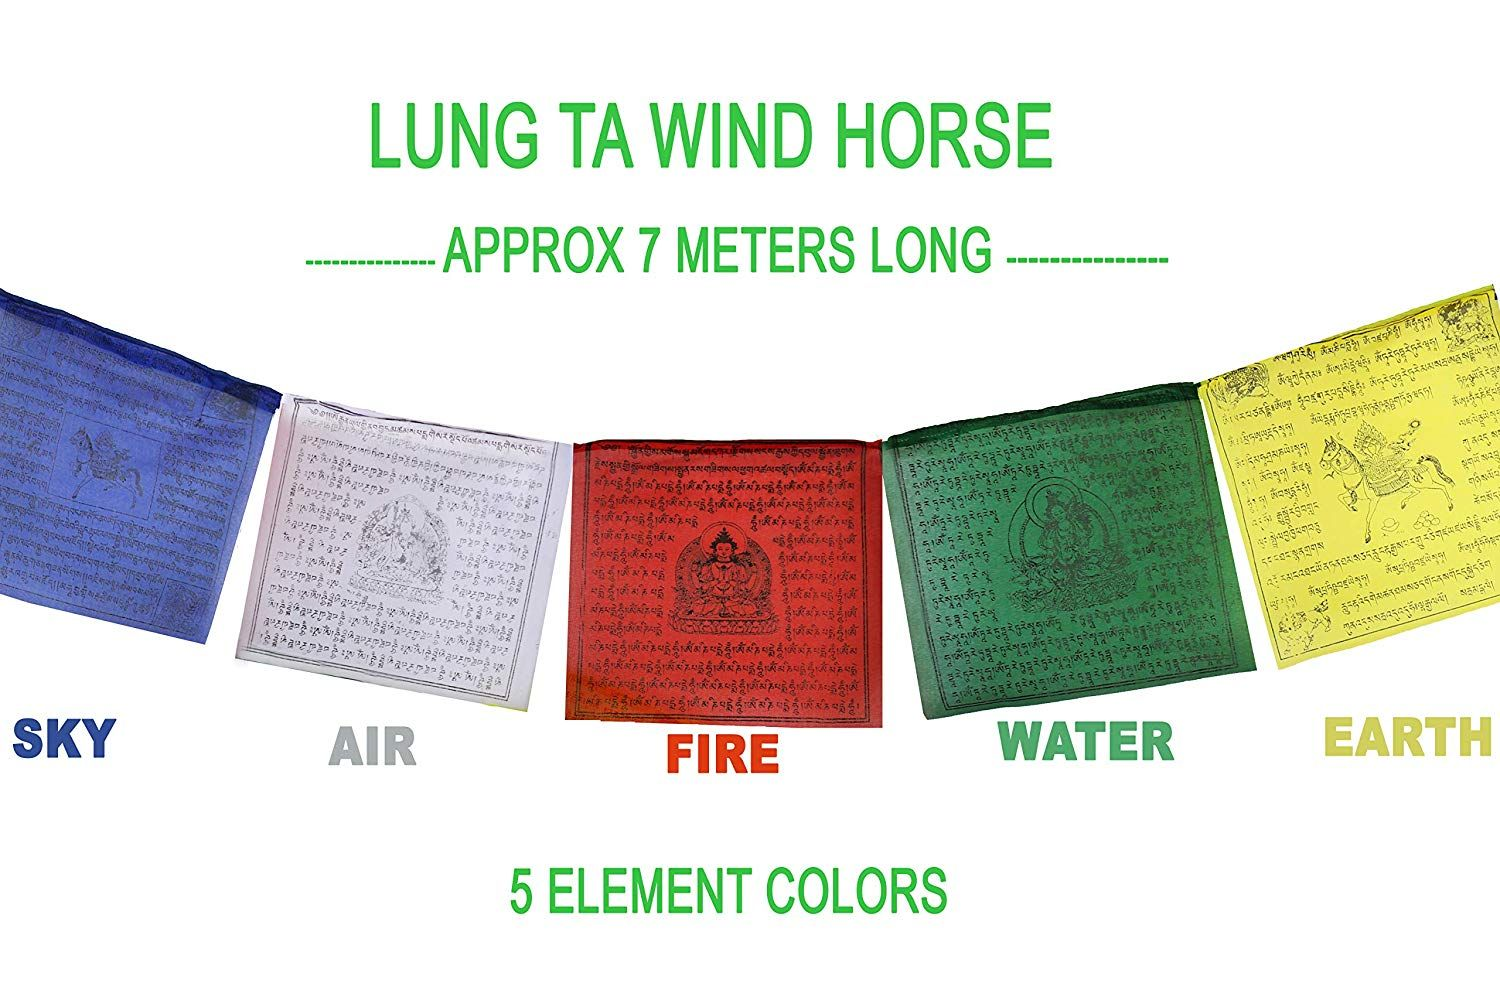 Tibetan Prayer Flag 10 X 10 Inches Large Roll Of 25 Flags Traditional Design With 5 Element Colors Handmade Tibetan Prayer Flag Prayer Flags Outdoor Flags